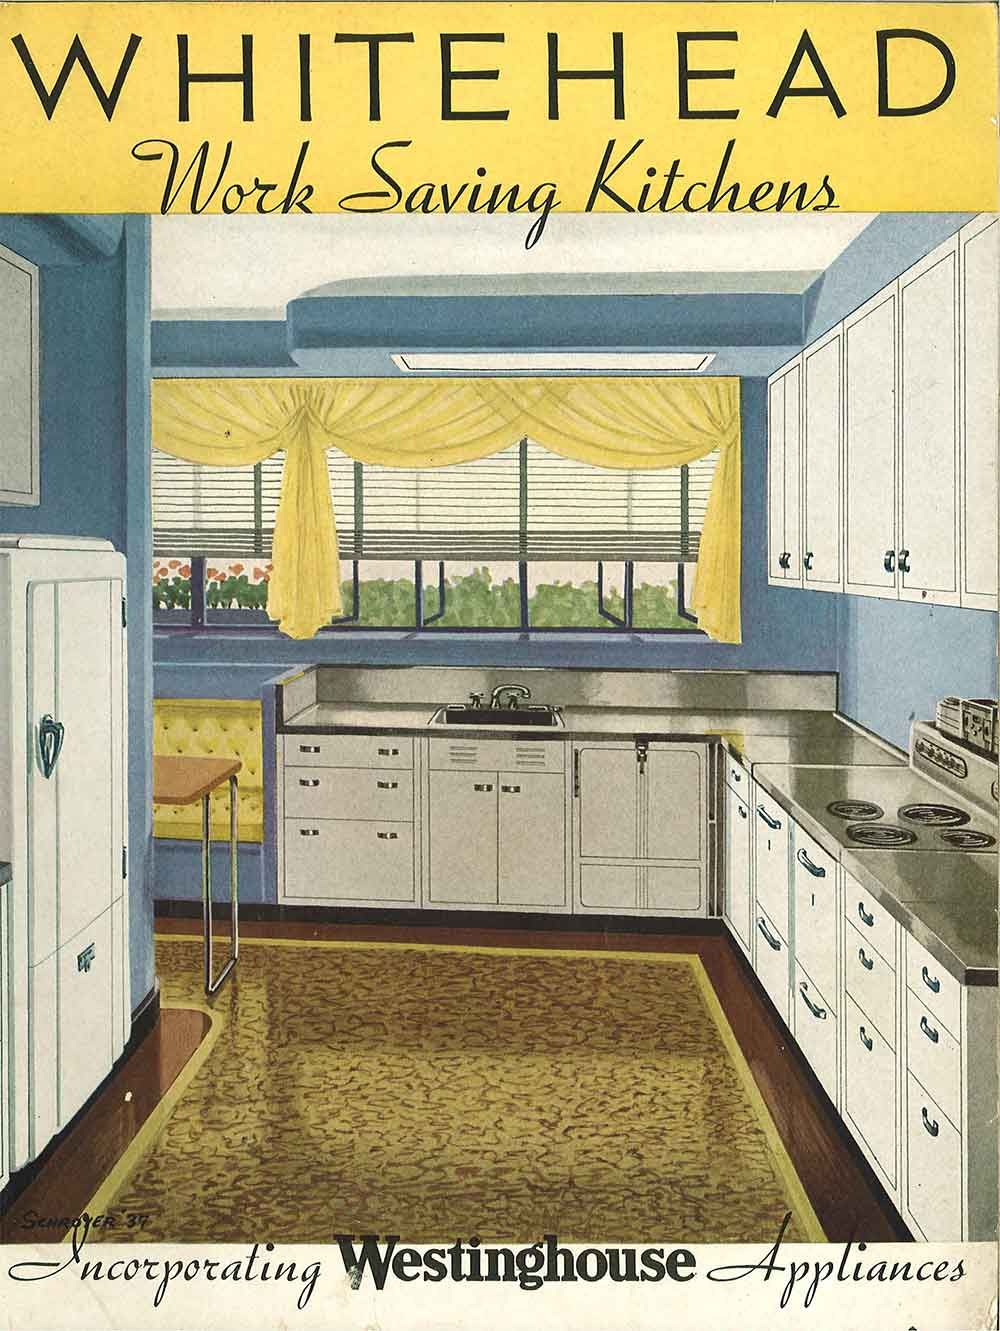 Whitehead Steel Kitchen Cabinets 20 Page Catalog From 1937 Steel Kitchen Cabinets Vintage Kitchen Cabinets Vintage Kitchen Cabinets 1950s